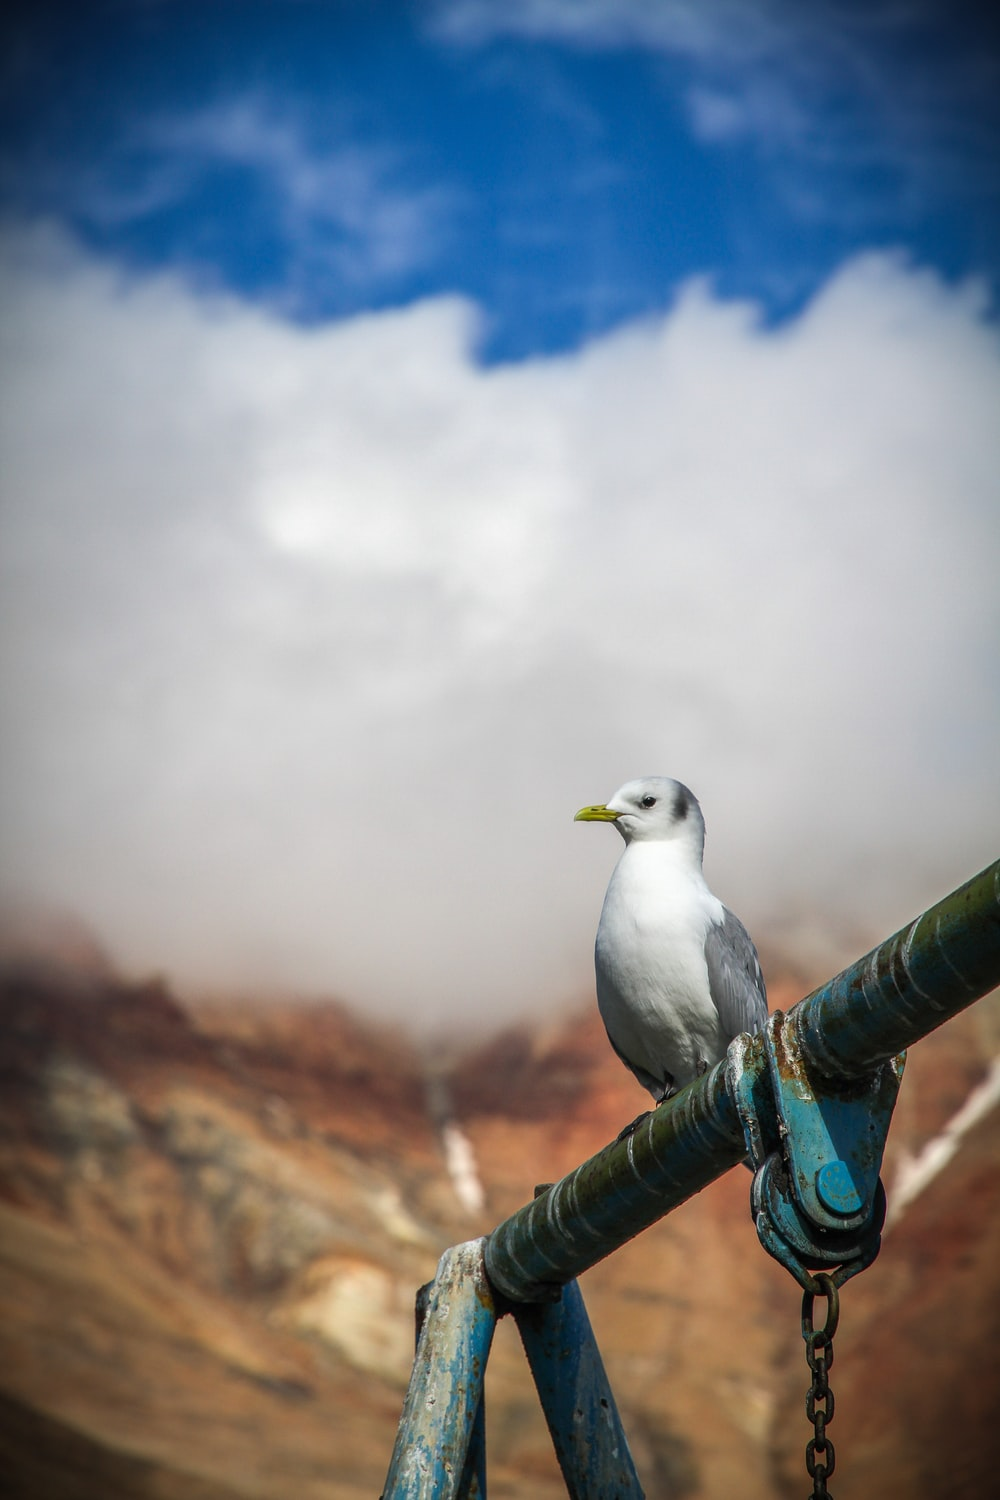 bird perched on metal pole